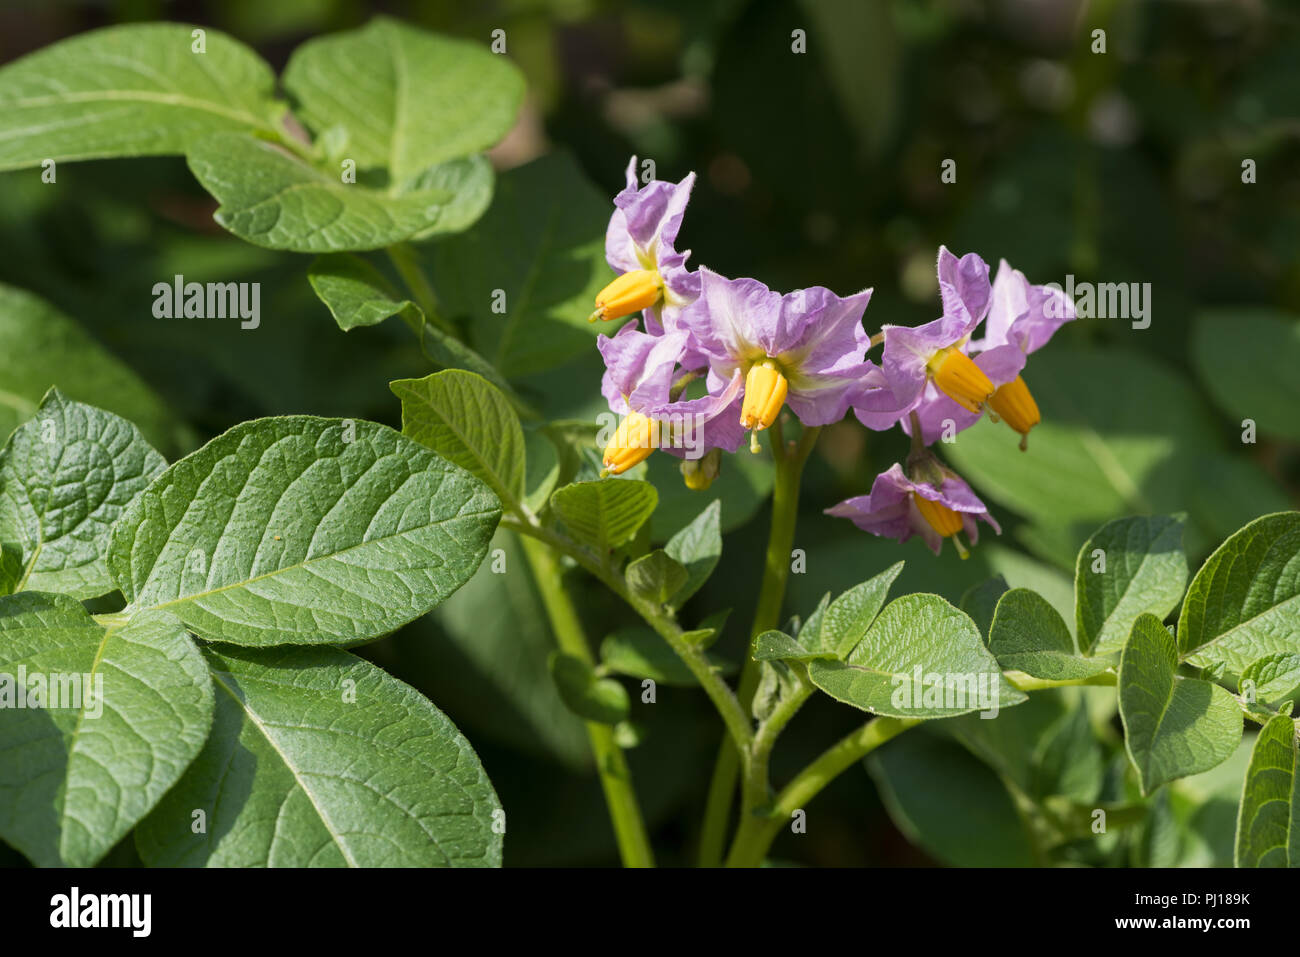 Pretty poisonous light purple potato flowers solanum tuberosum pretty poisonous light purple potato flowers solanum tuberosum similar to tomato and nightshade which will become fruit full of toxin solanine mightylinksfo